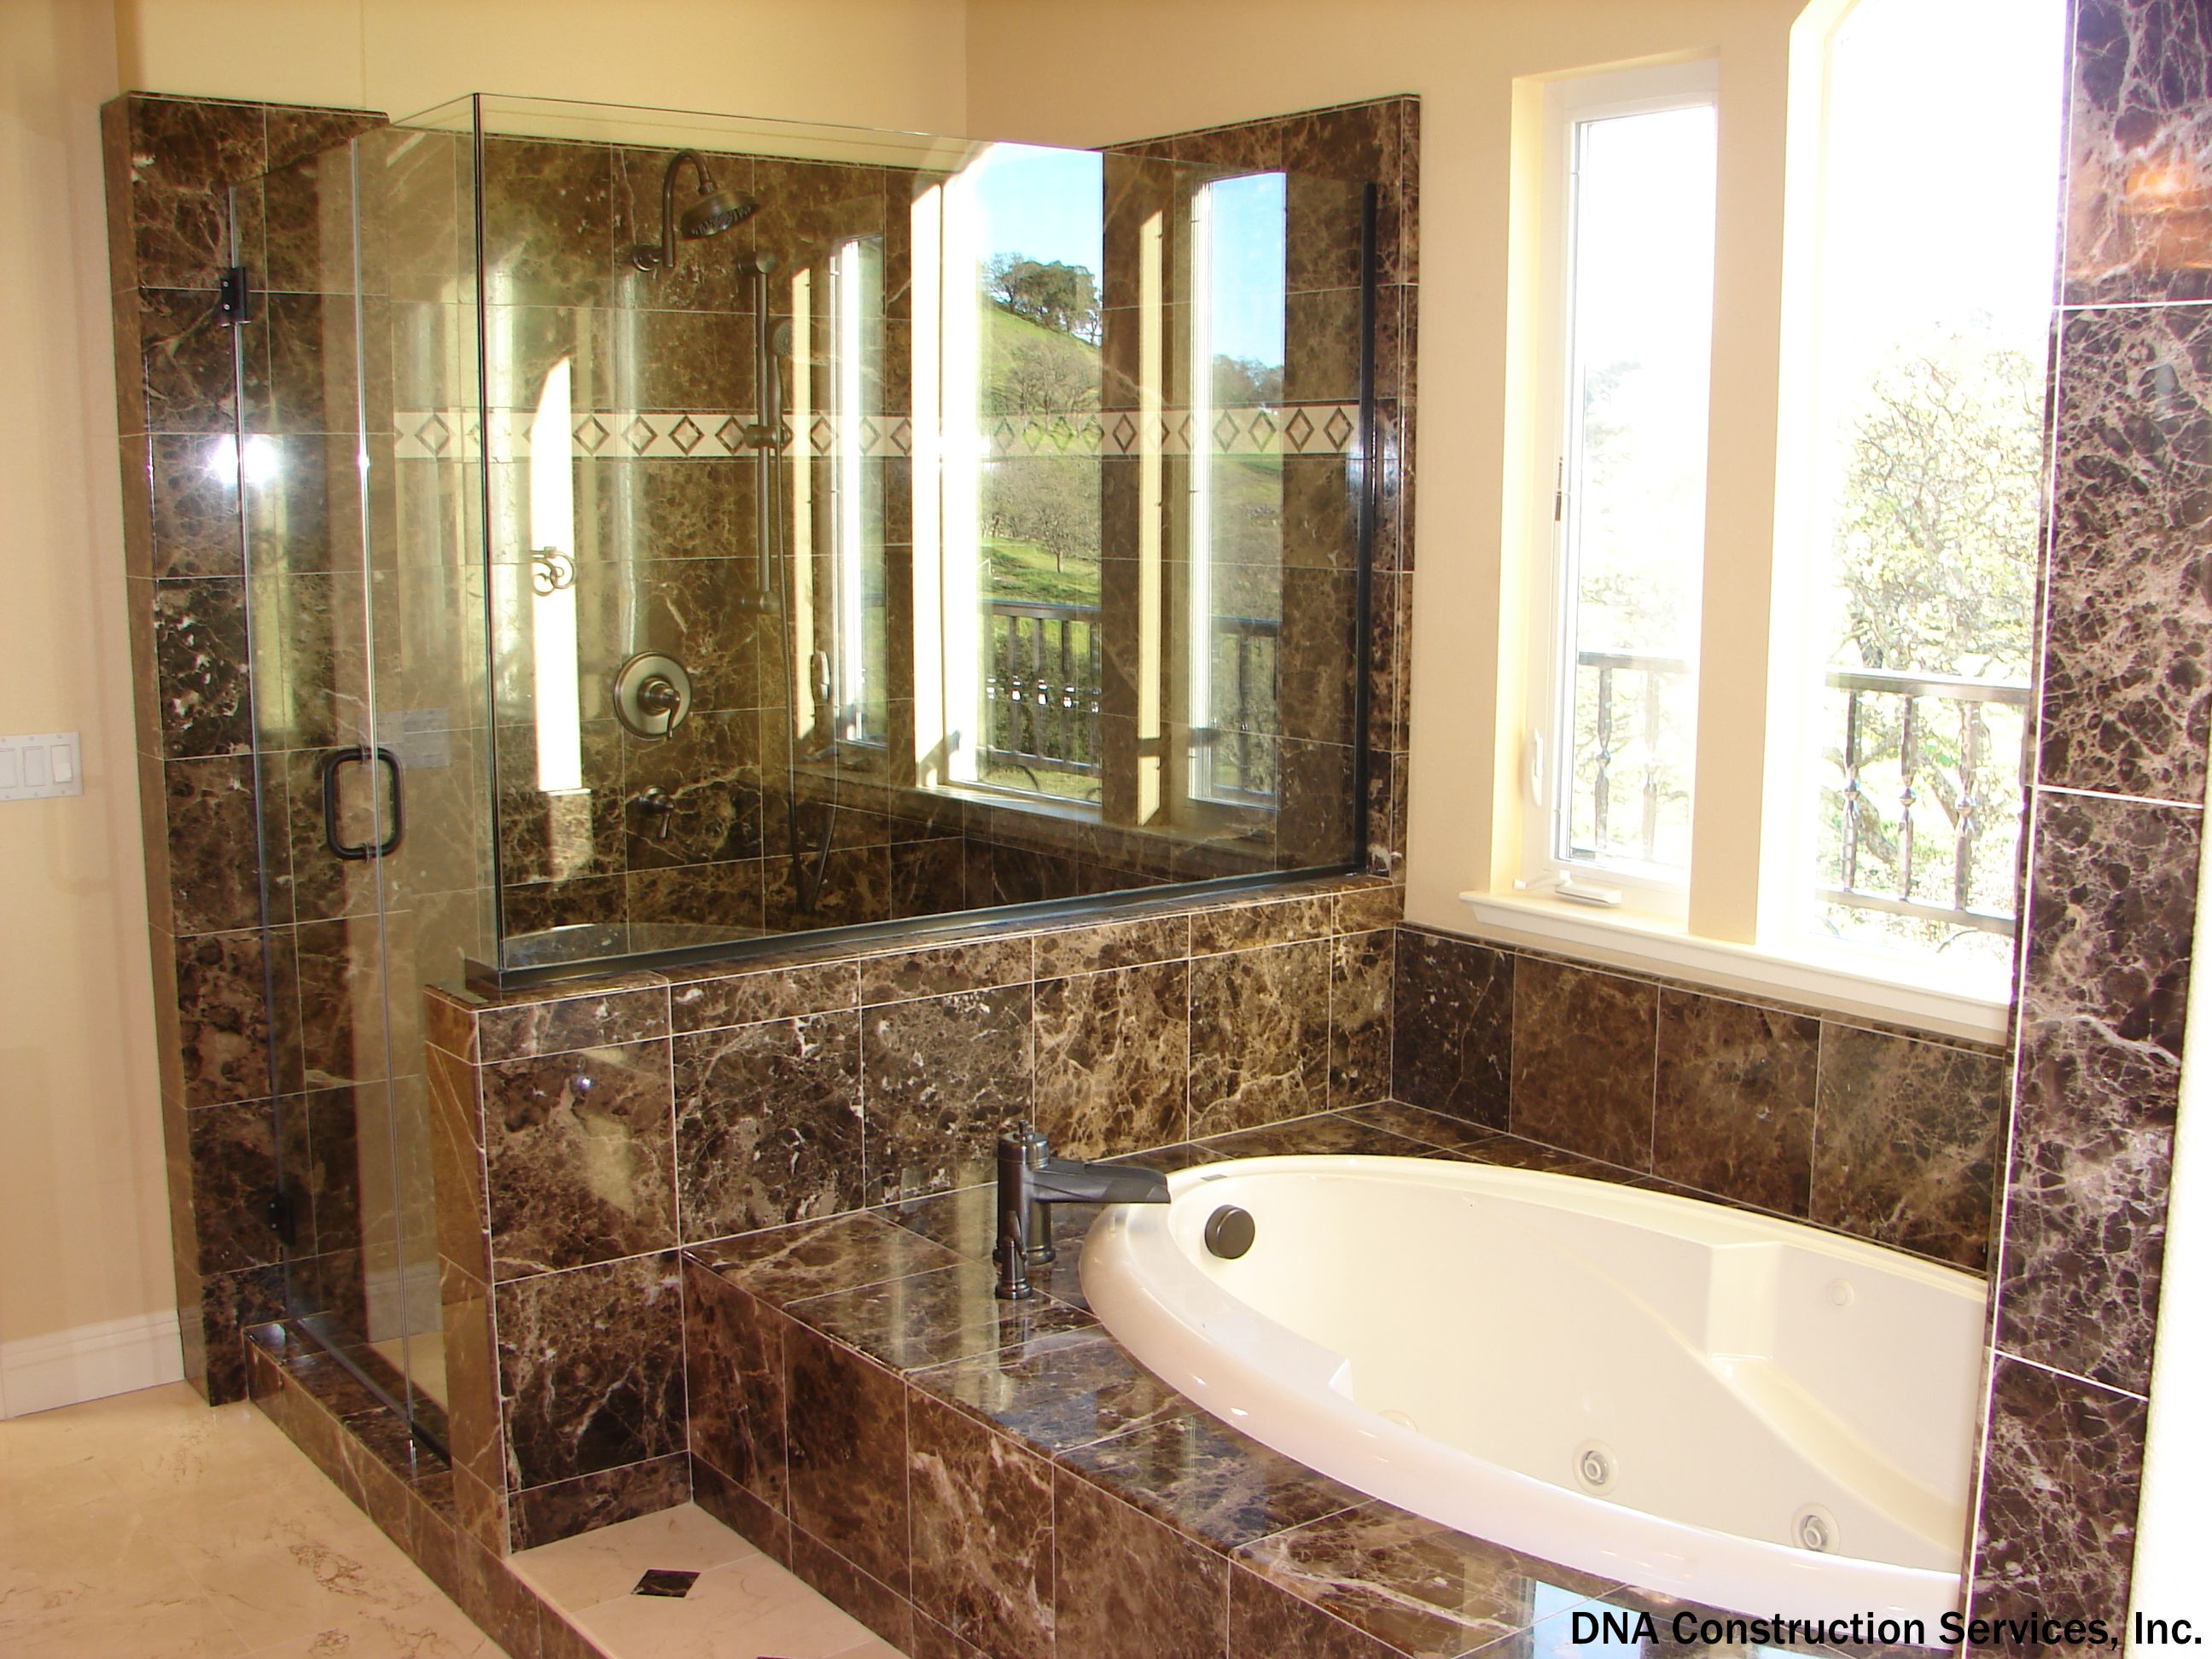 Brown Marble Tub And Shower Highlight This Master Bathroom Large Windows Above Let In Some Great Bathroom Renovation Cost Cost To Redo Bathroom Add A Bathroom